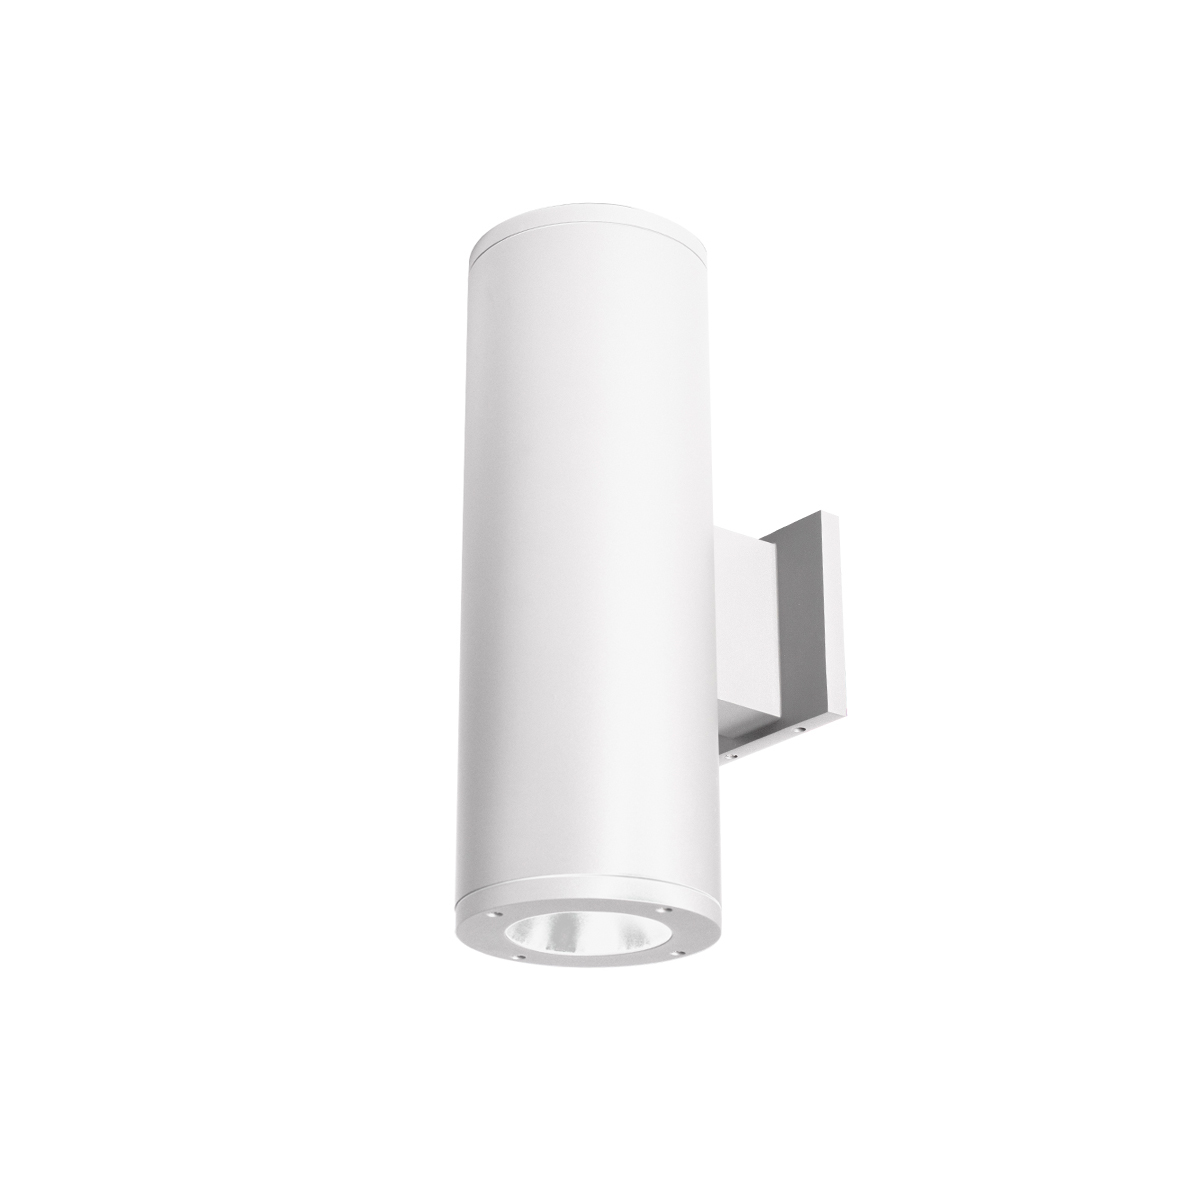 Away from Wall 2700K WAC Lighting DS-WD05-F27A-BK 5-Inch Double Side Tube Arch Wall Mount